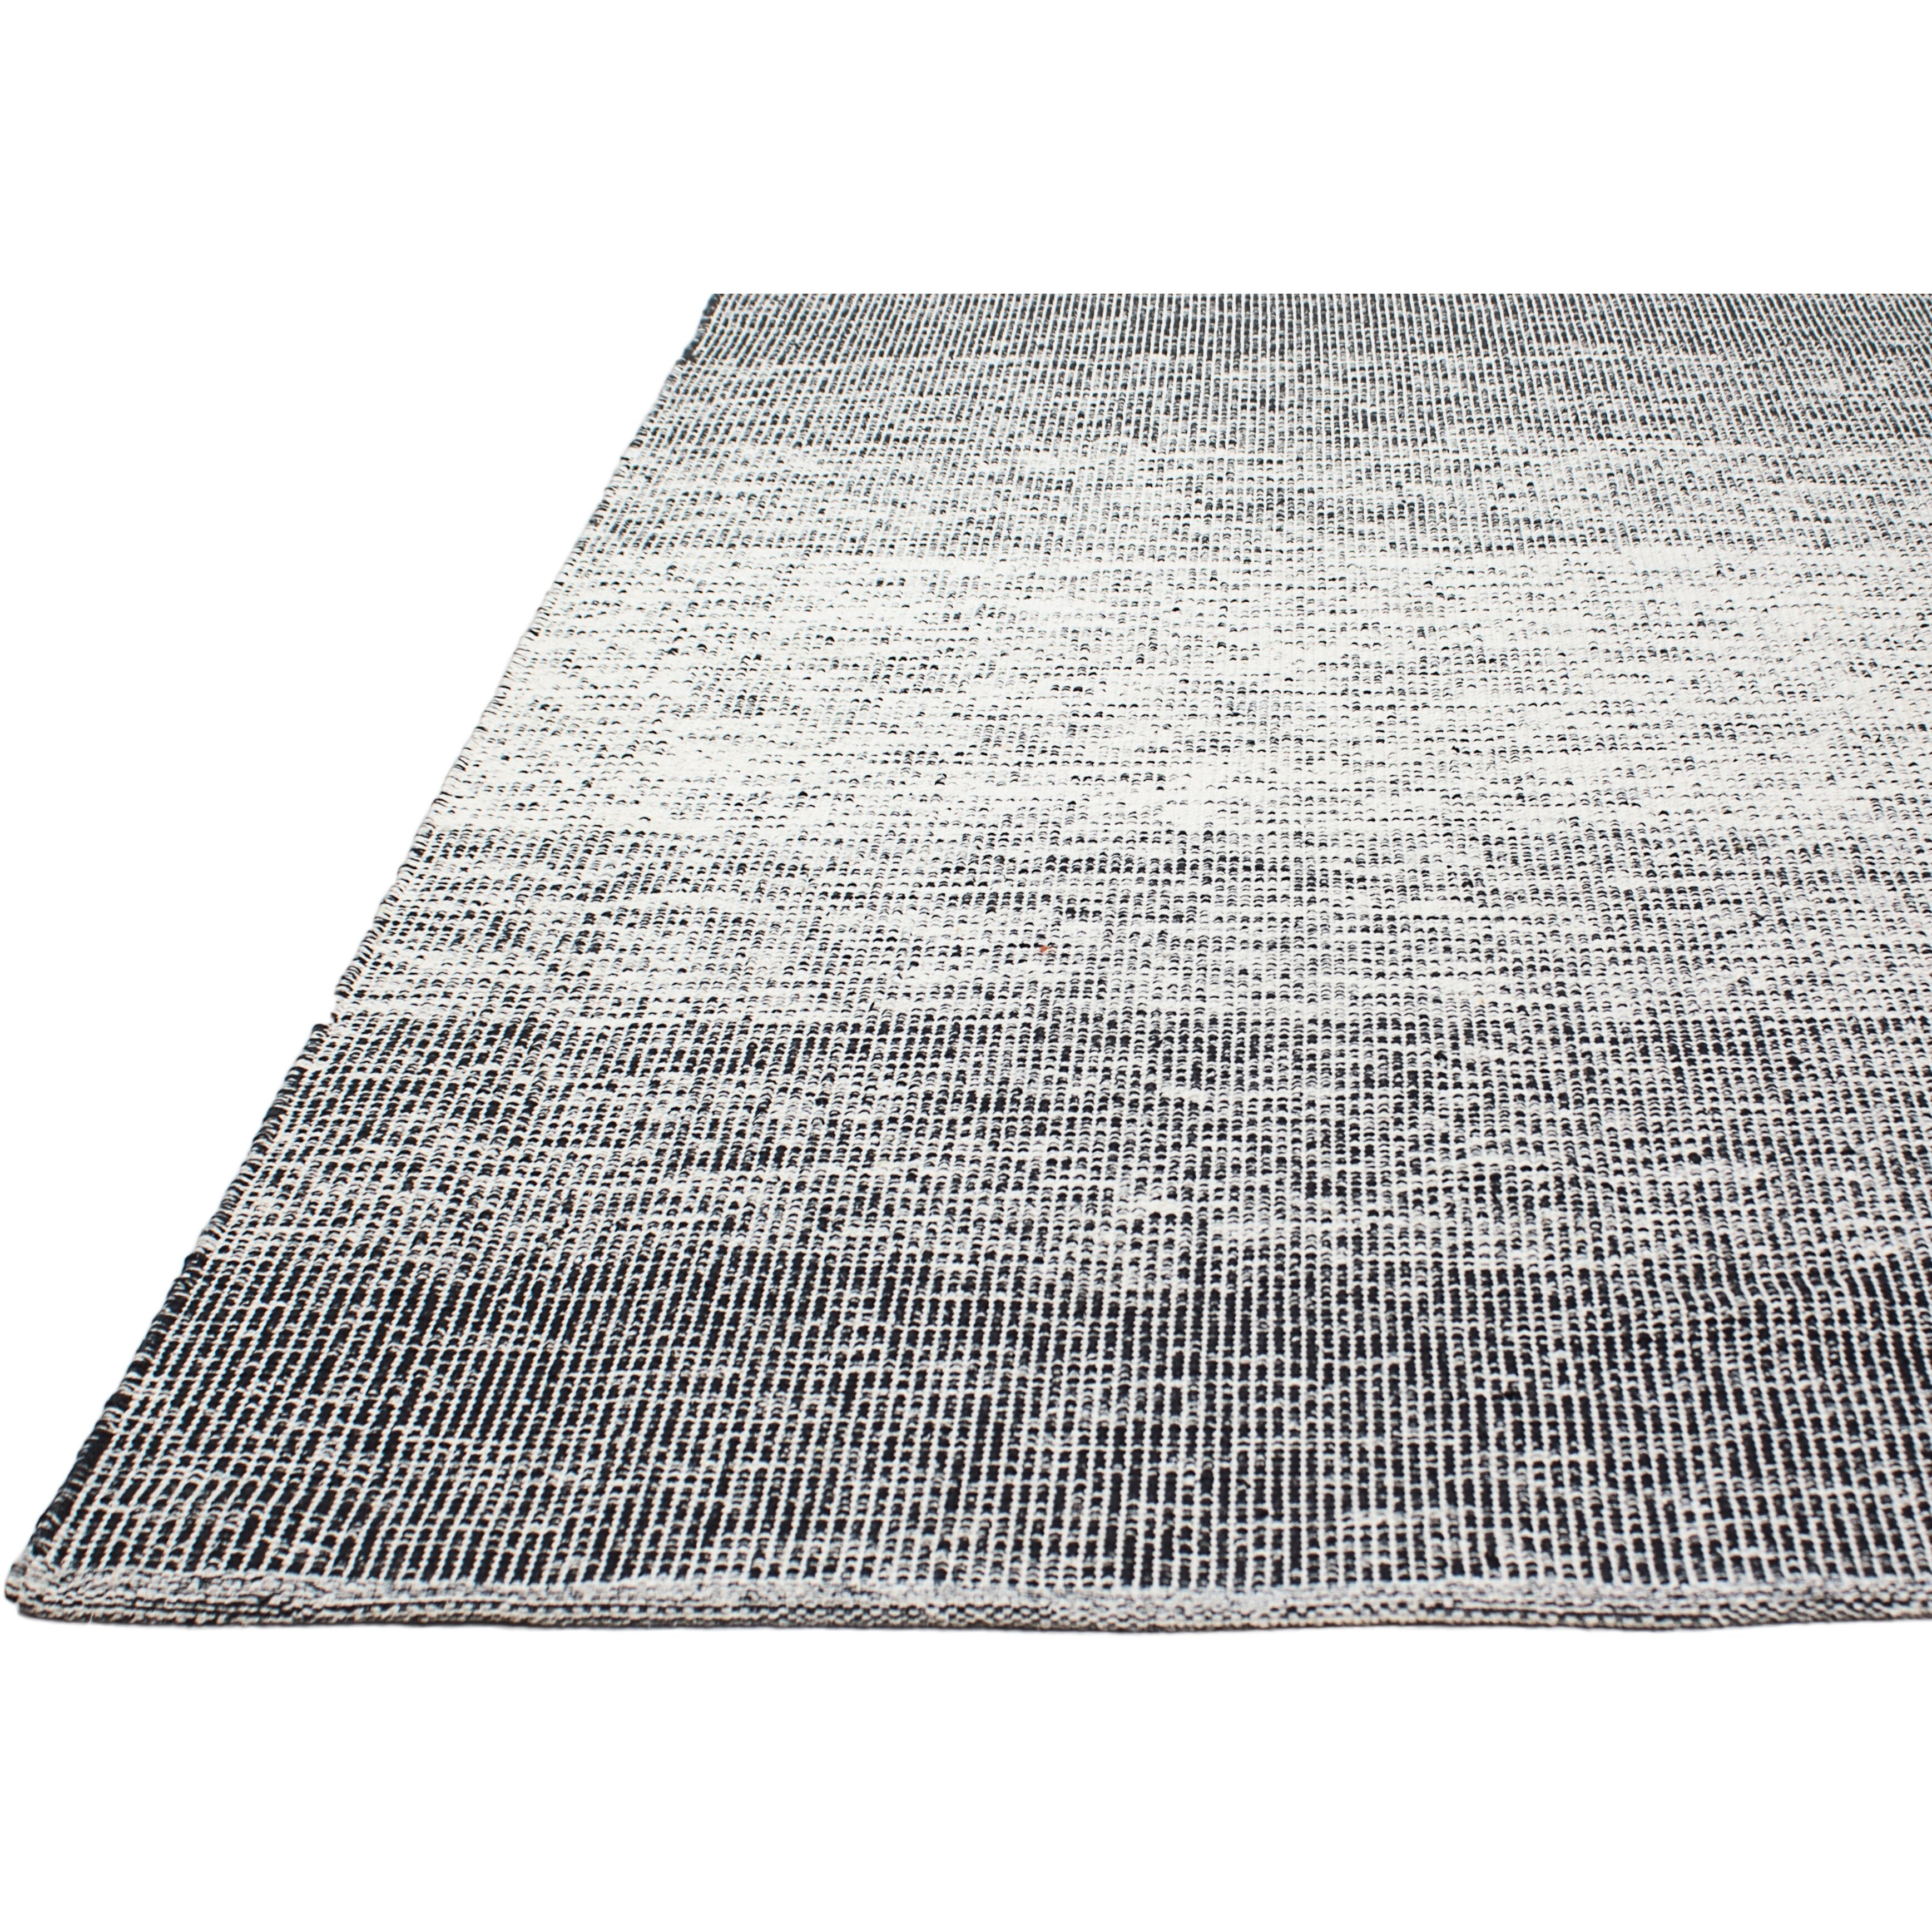 Fab Rugs Zen Hand-Woven Black/Gray Area Rug & Reviews